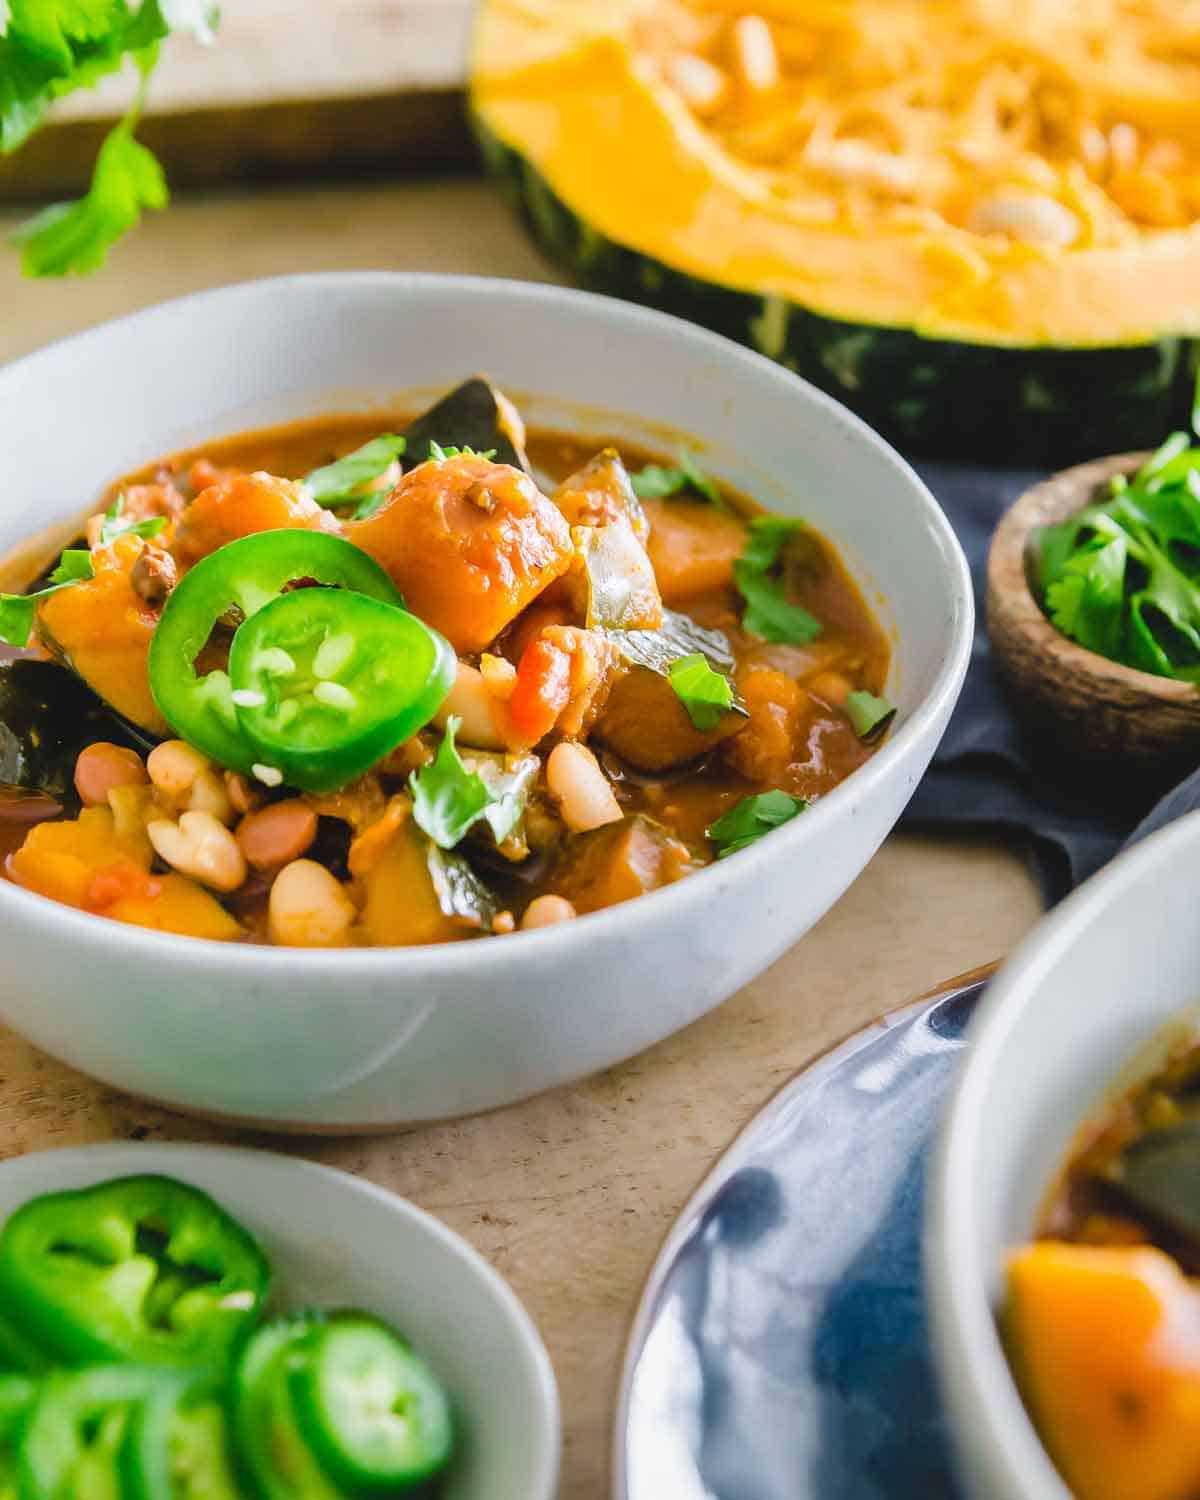 Kabocha squash chili with pinto and white beans is a filling and flavorful meal for the colder months.